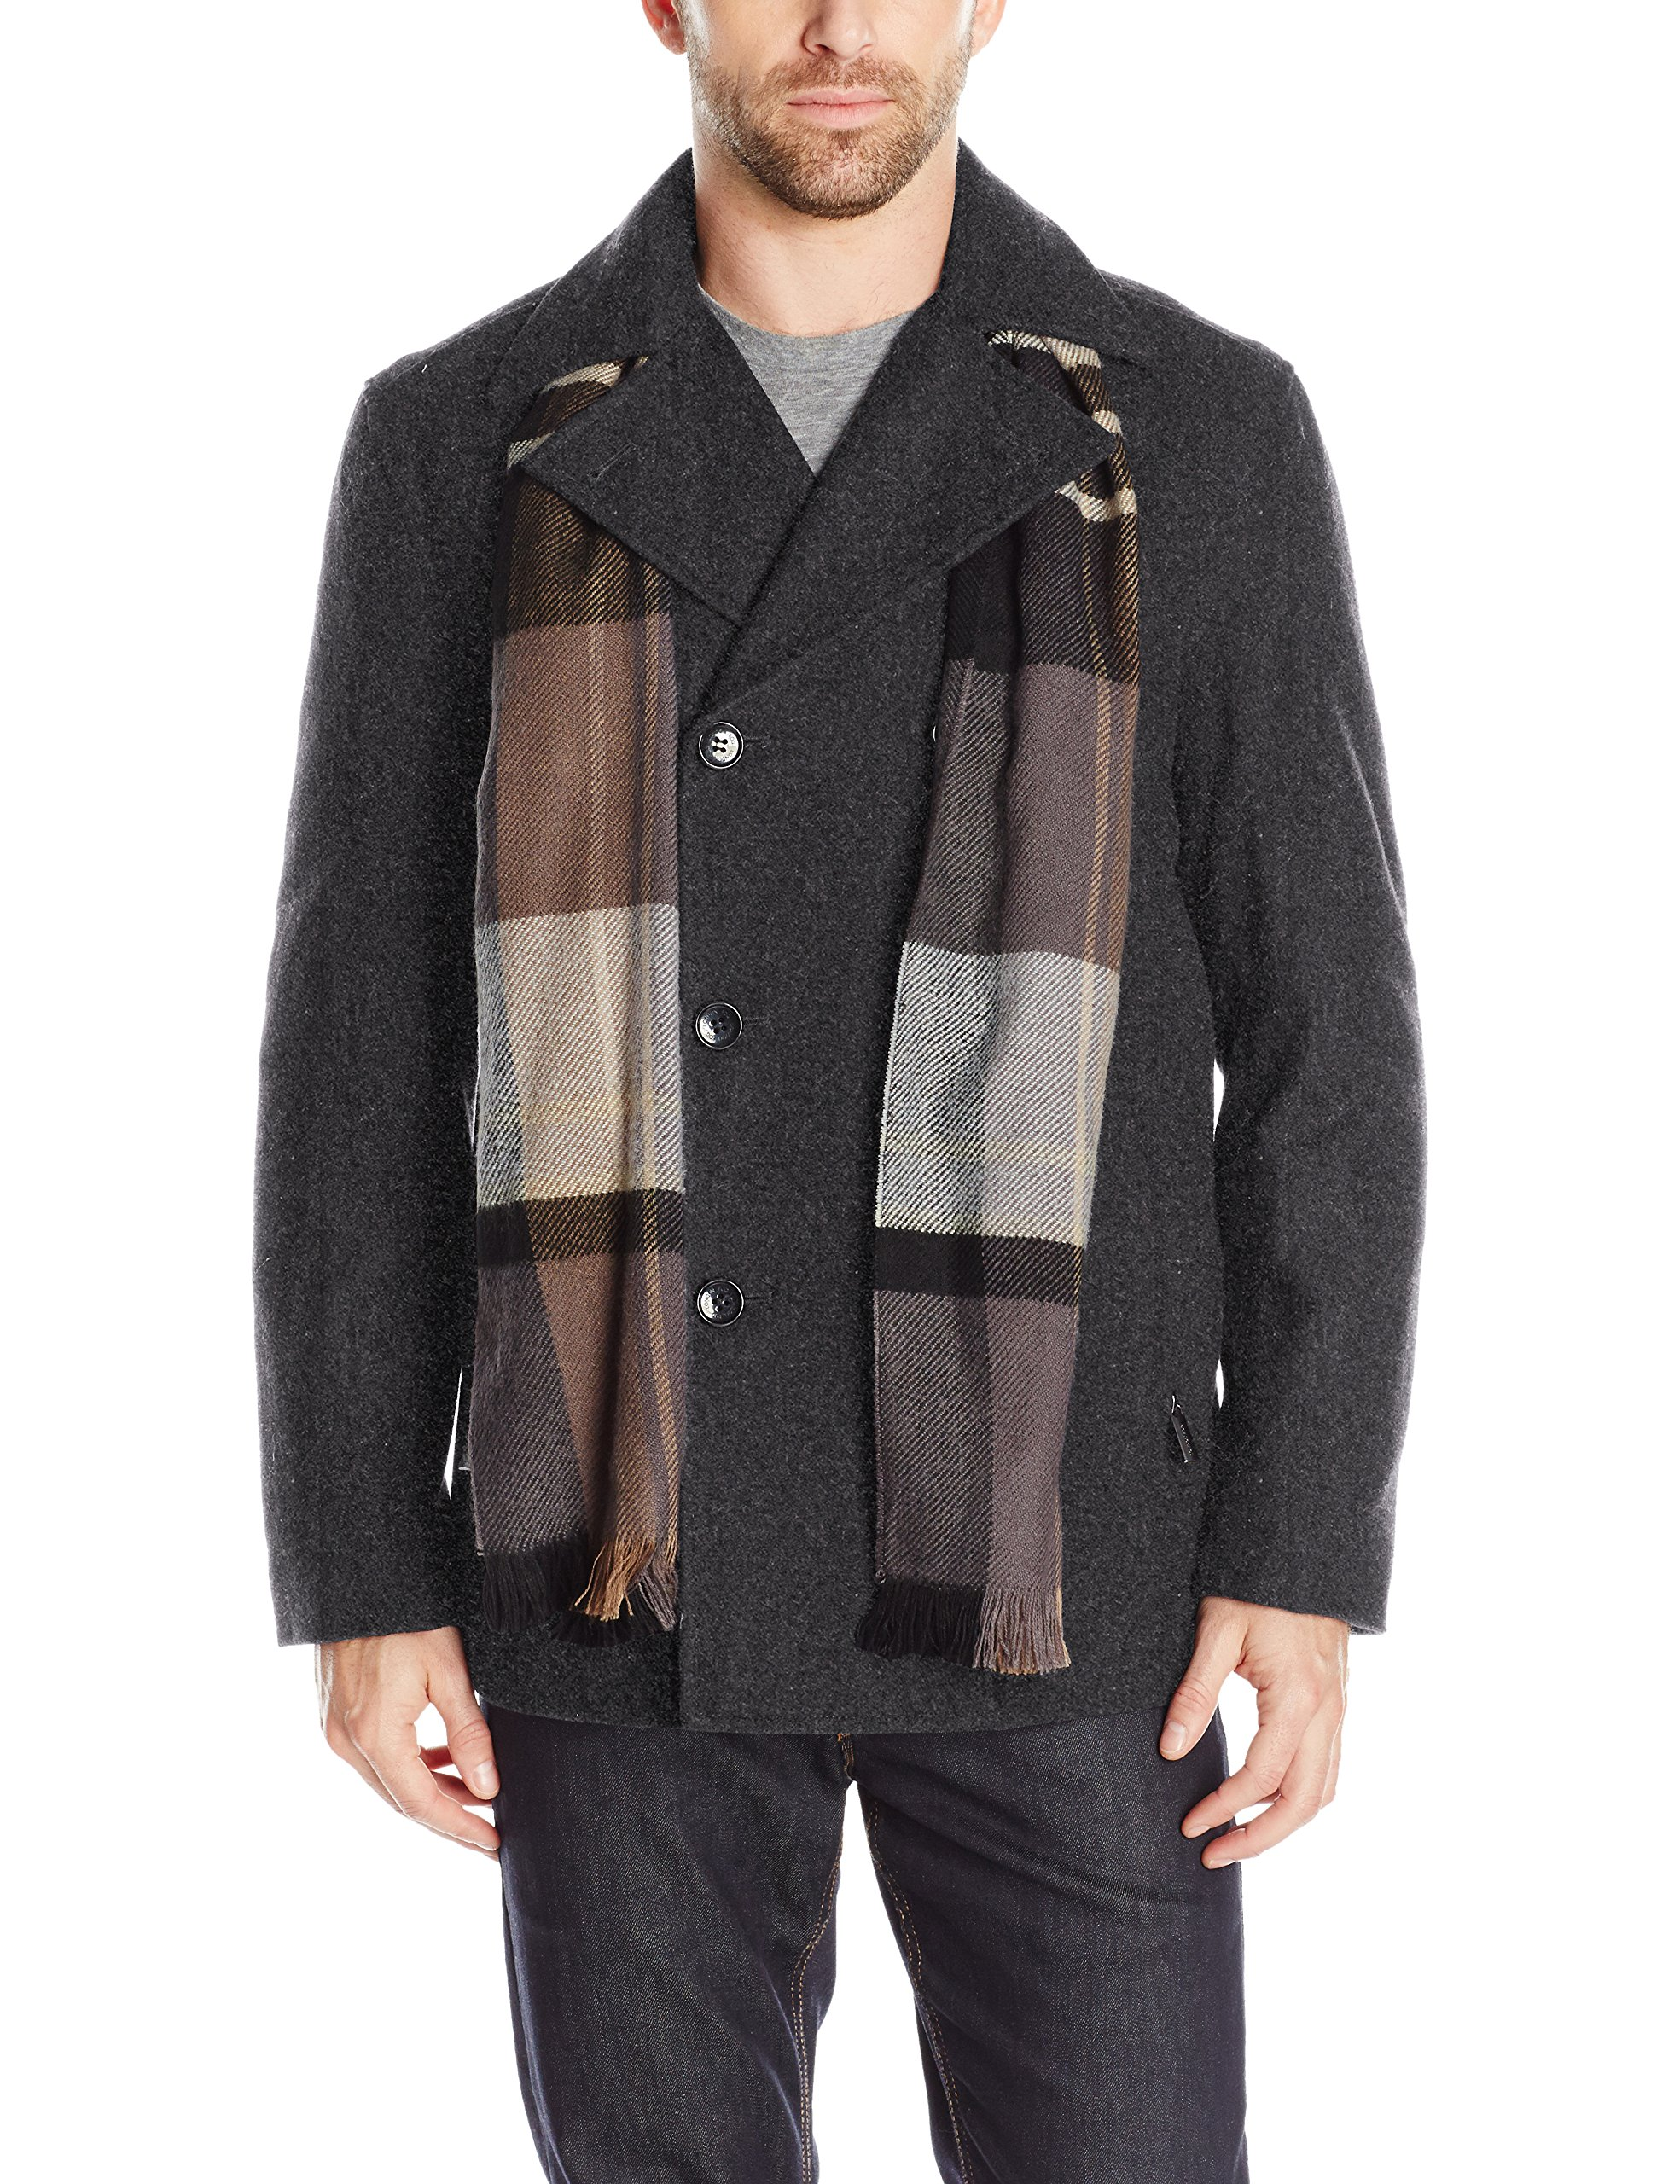 London Fog Men's Wool Blend Double Breasted Pea Coat, New Charcoal, L by London Fog